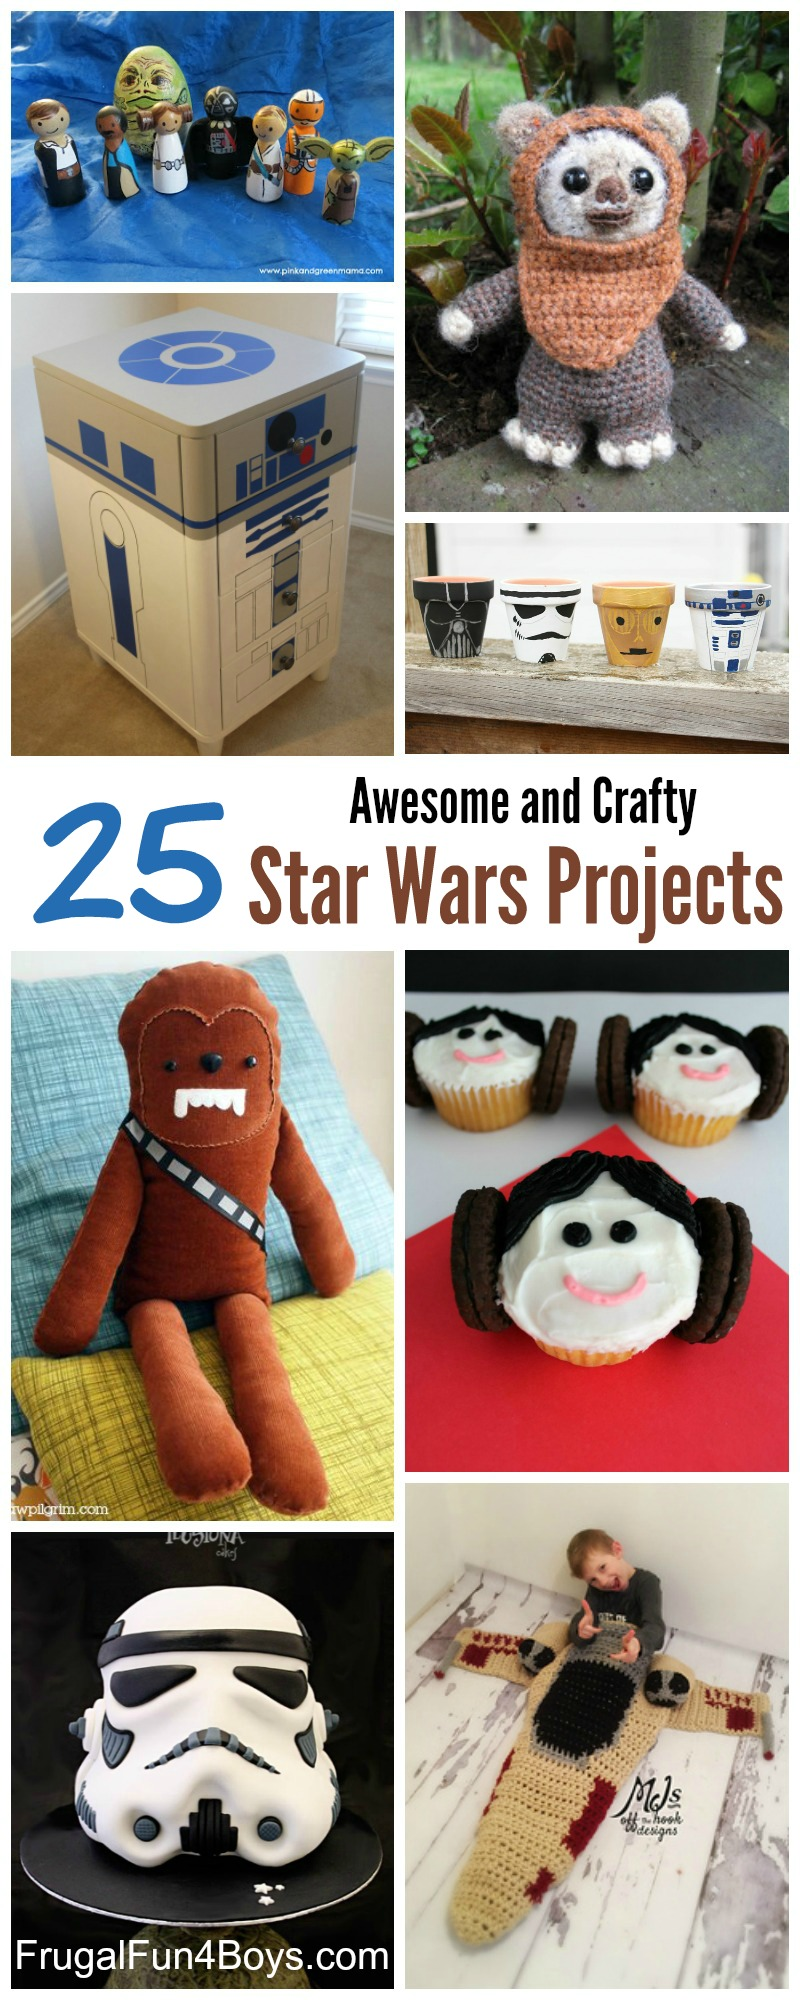 25 Awesome Star Wars Crafts to Make